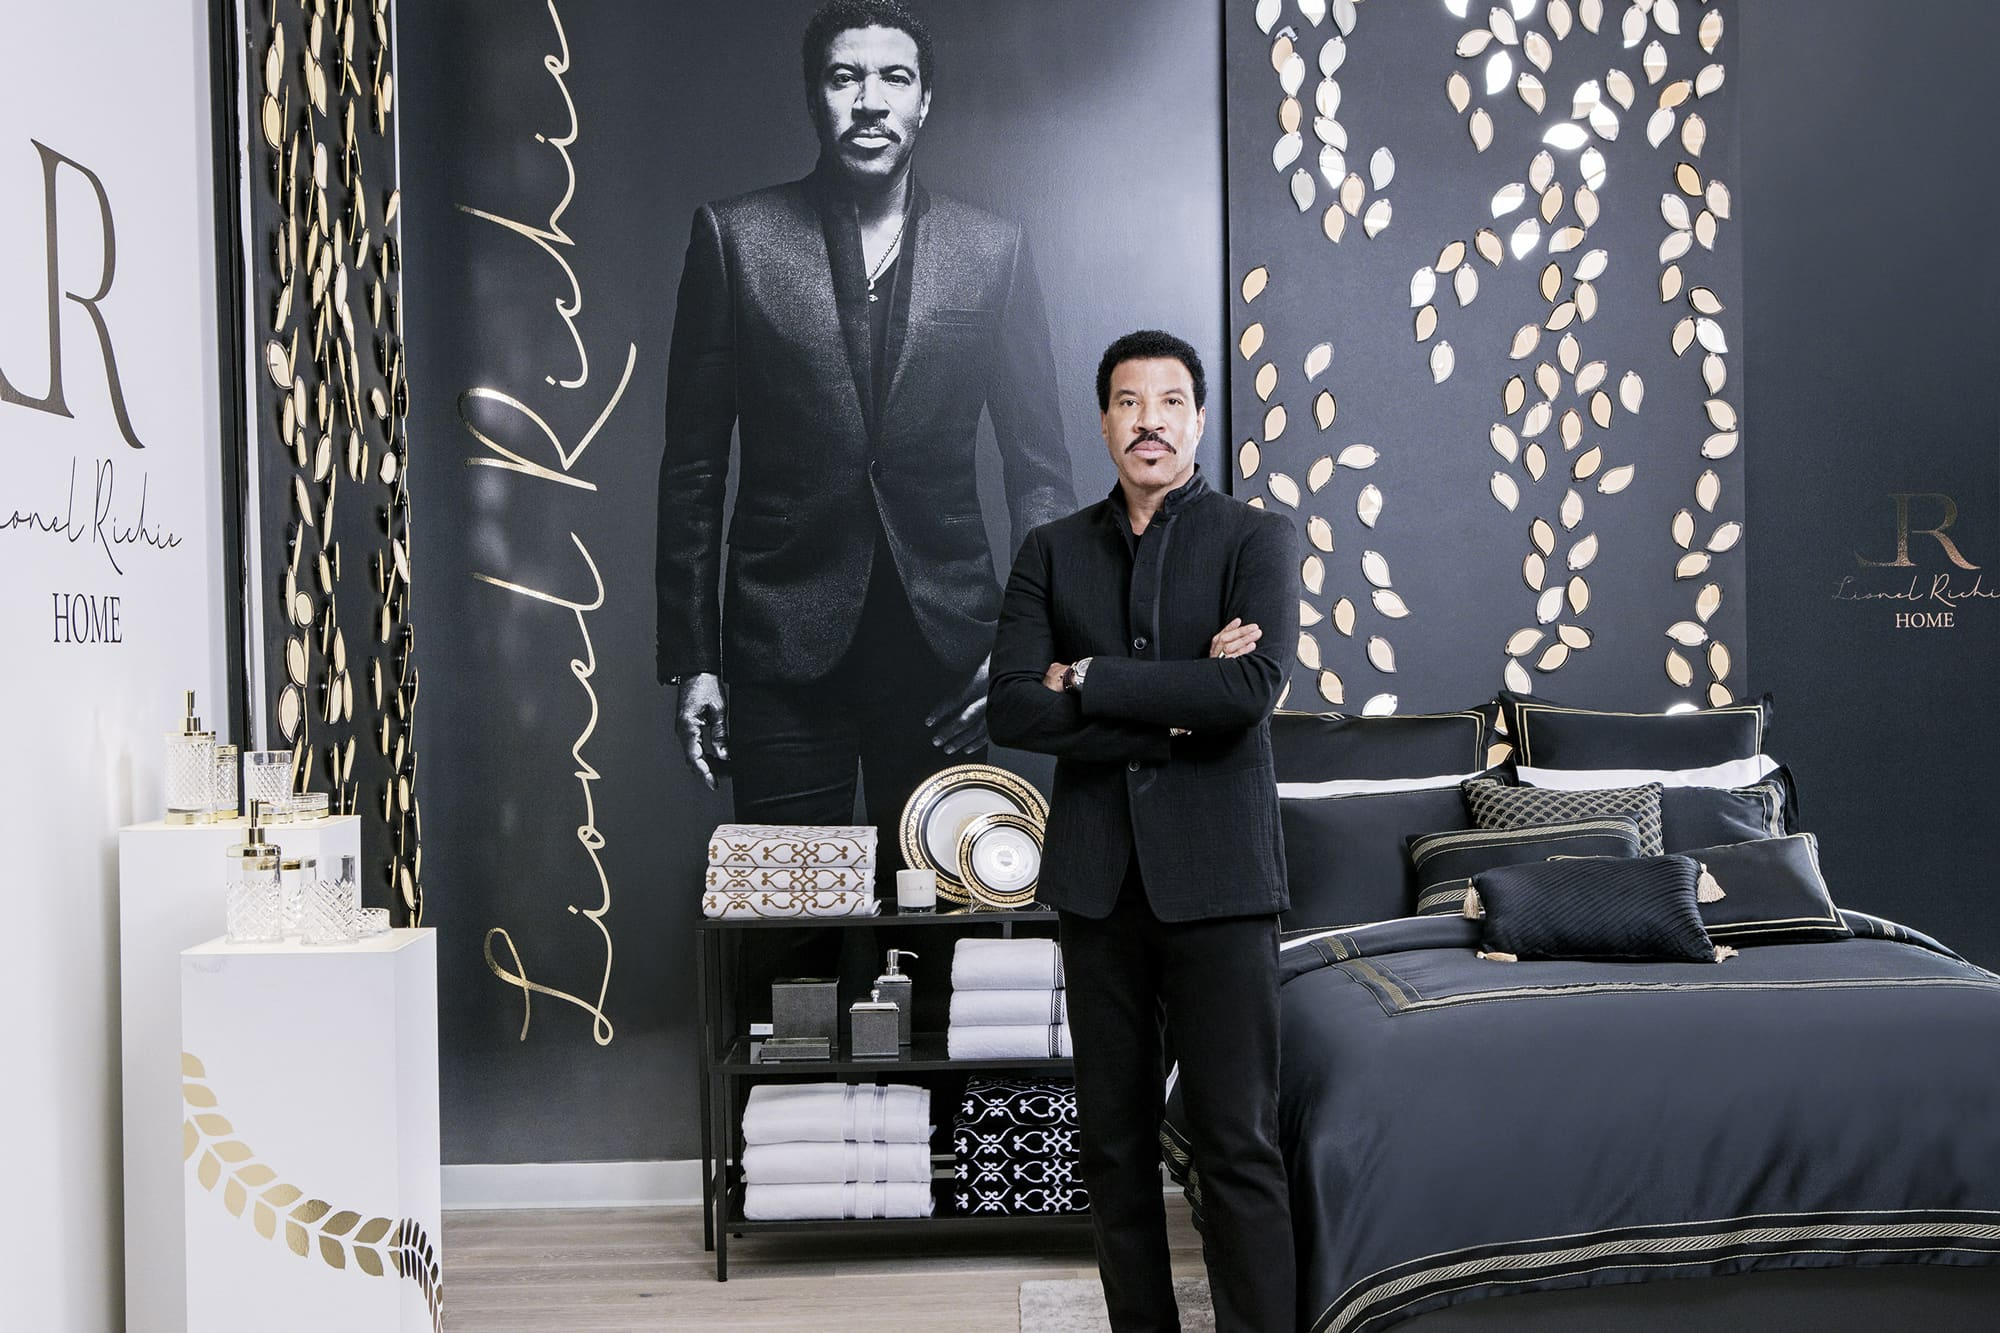 77732a524946 JC Penney taps Lionel Richie to help with its new home brand